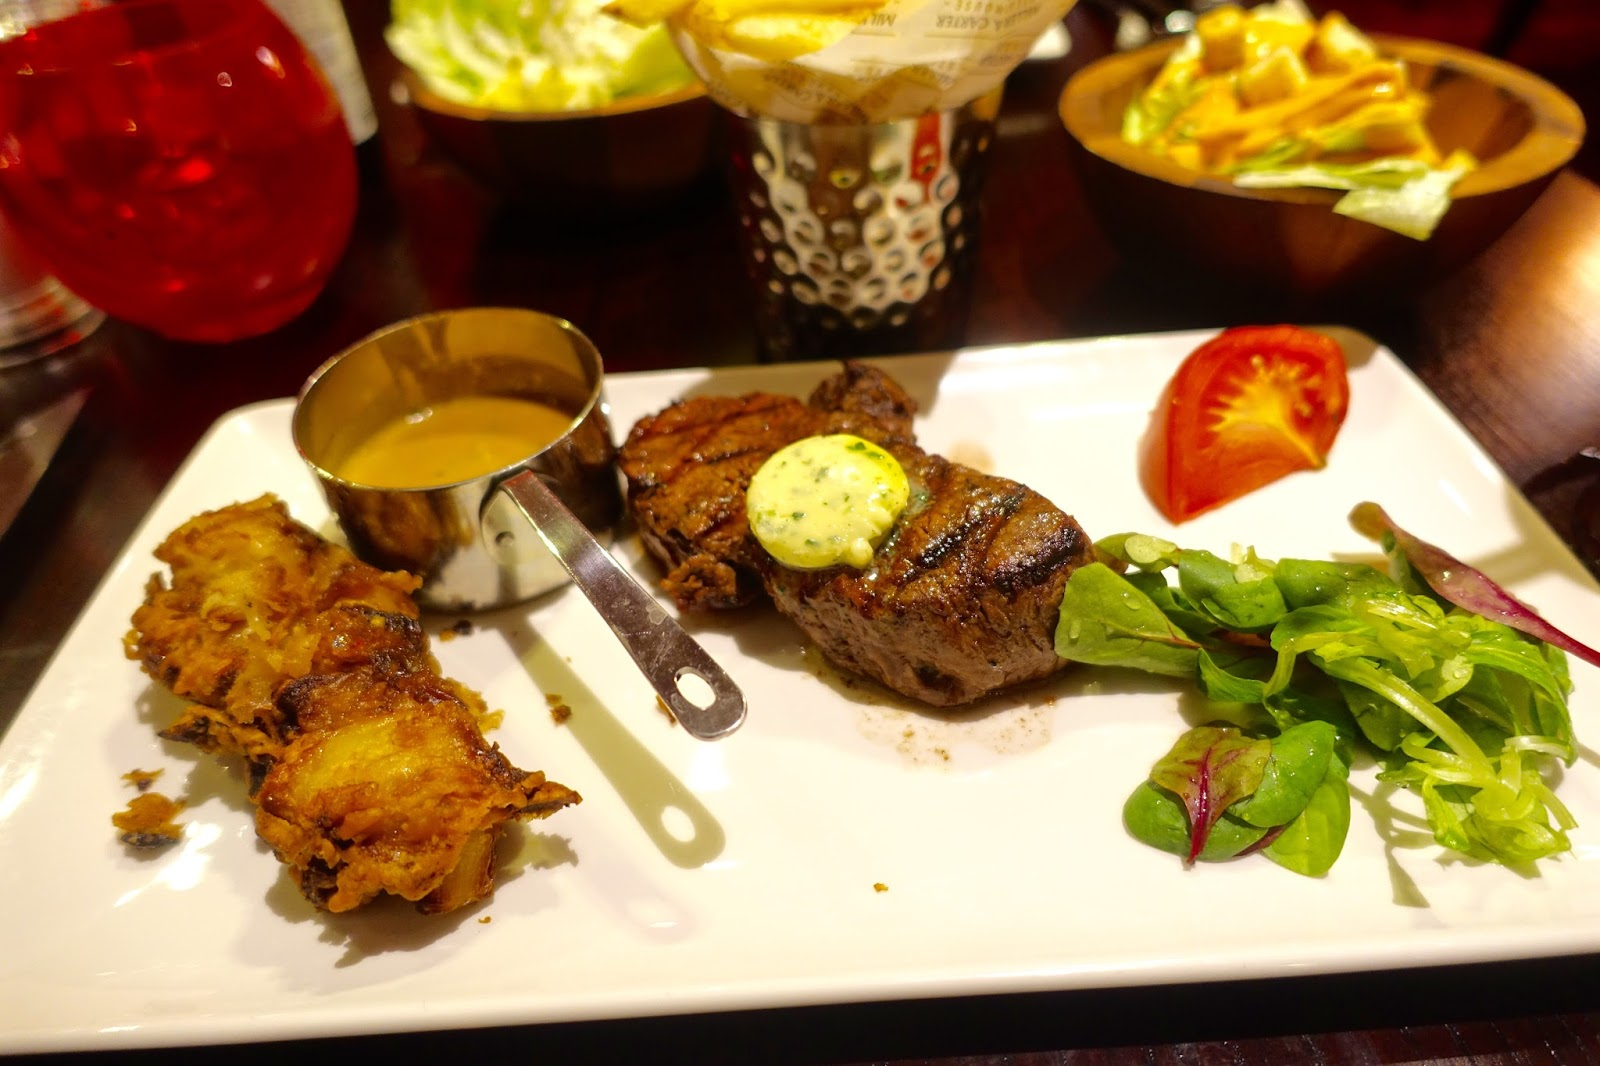 the miller and carter steak experience